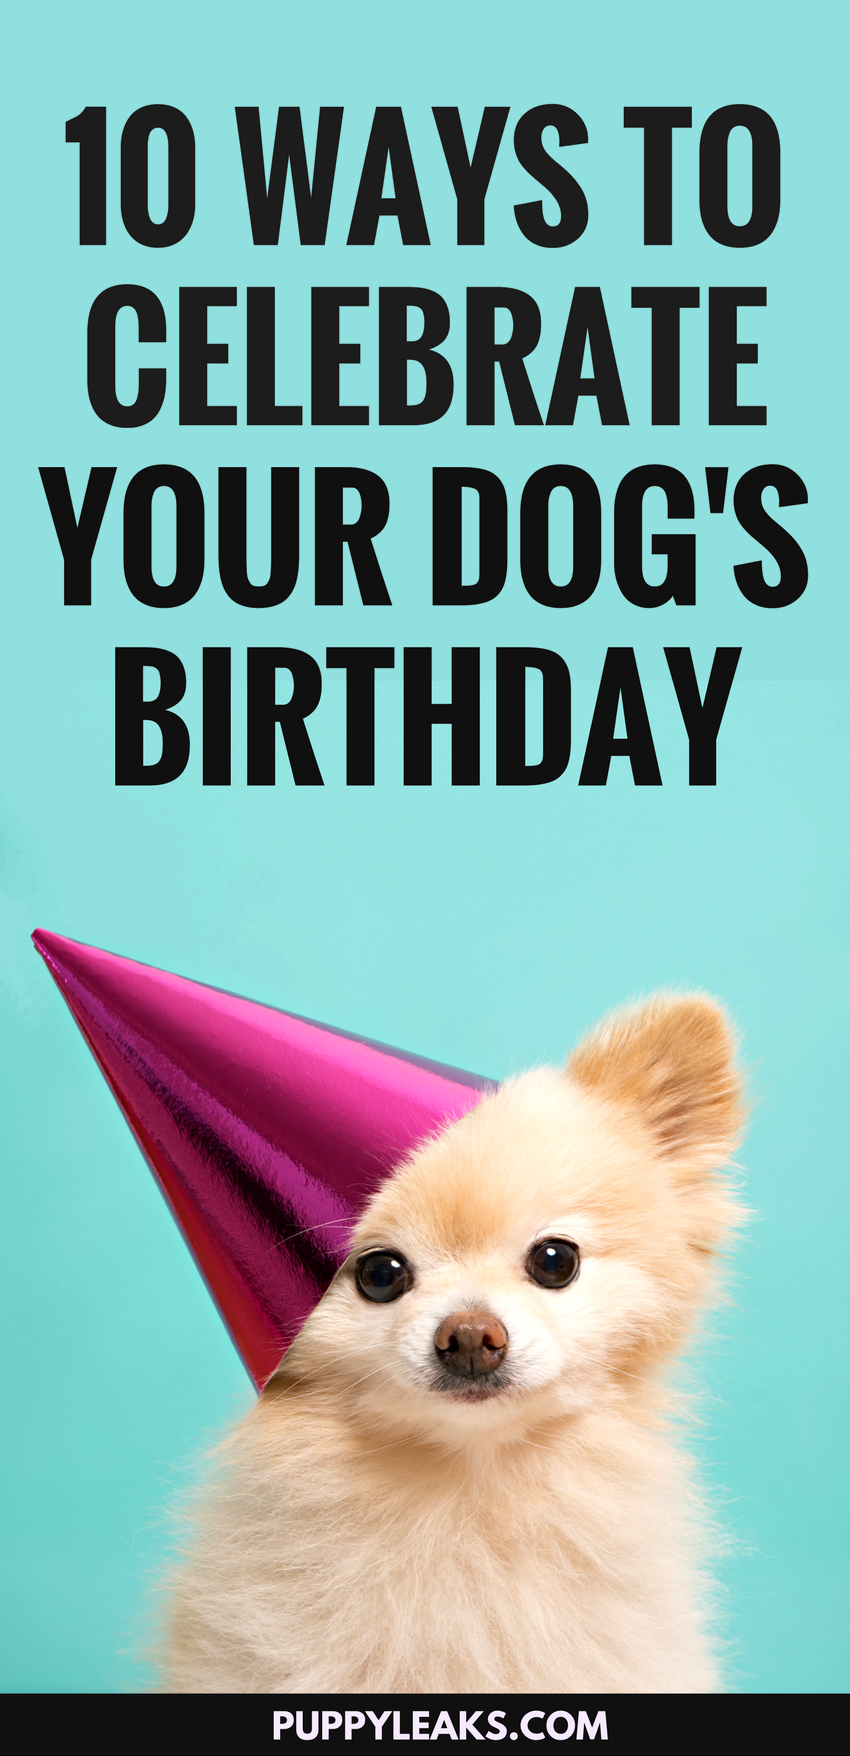 10 Fun Ways To Celebrate Your Dogs Birthday